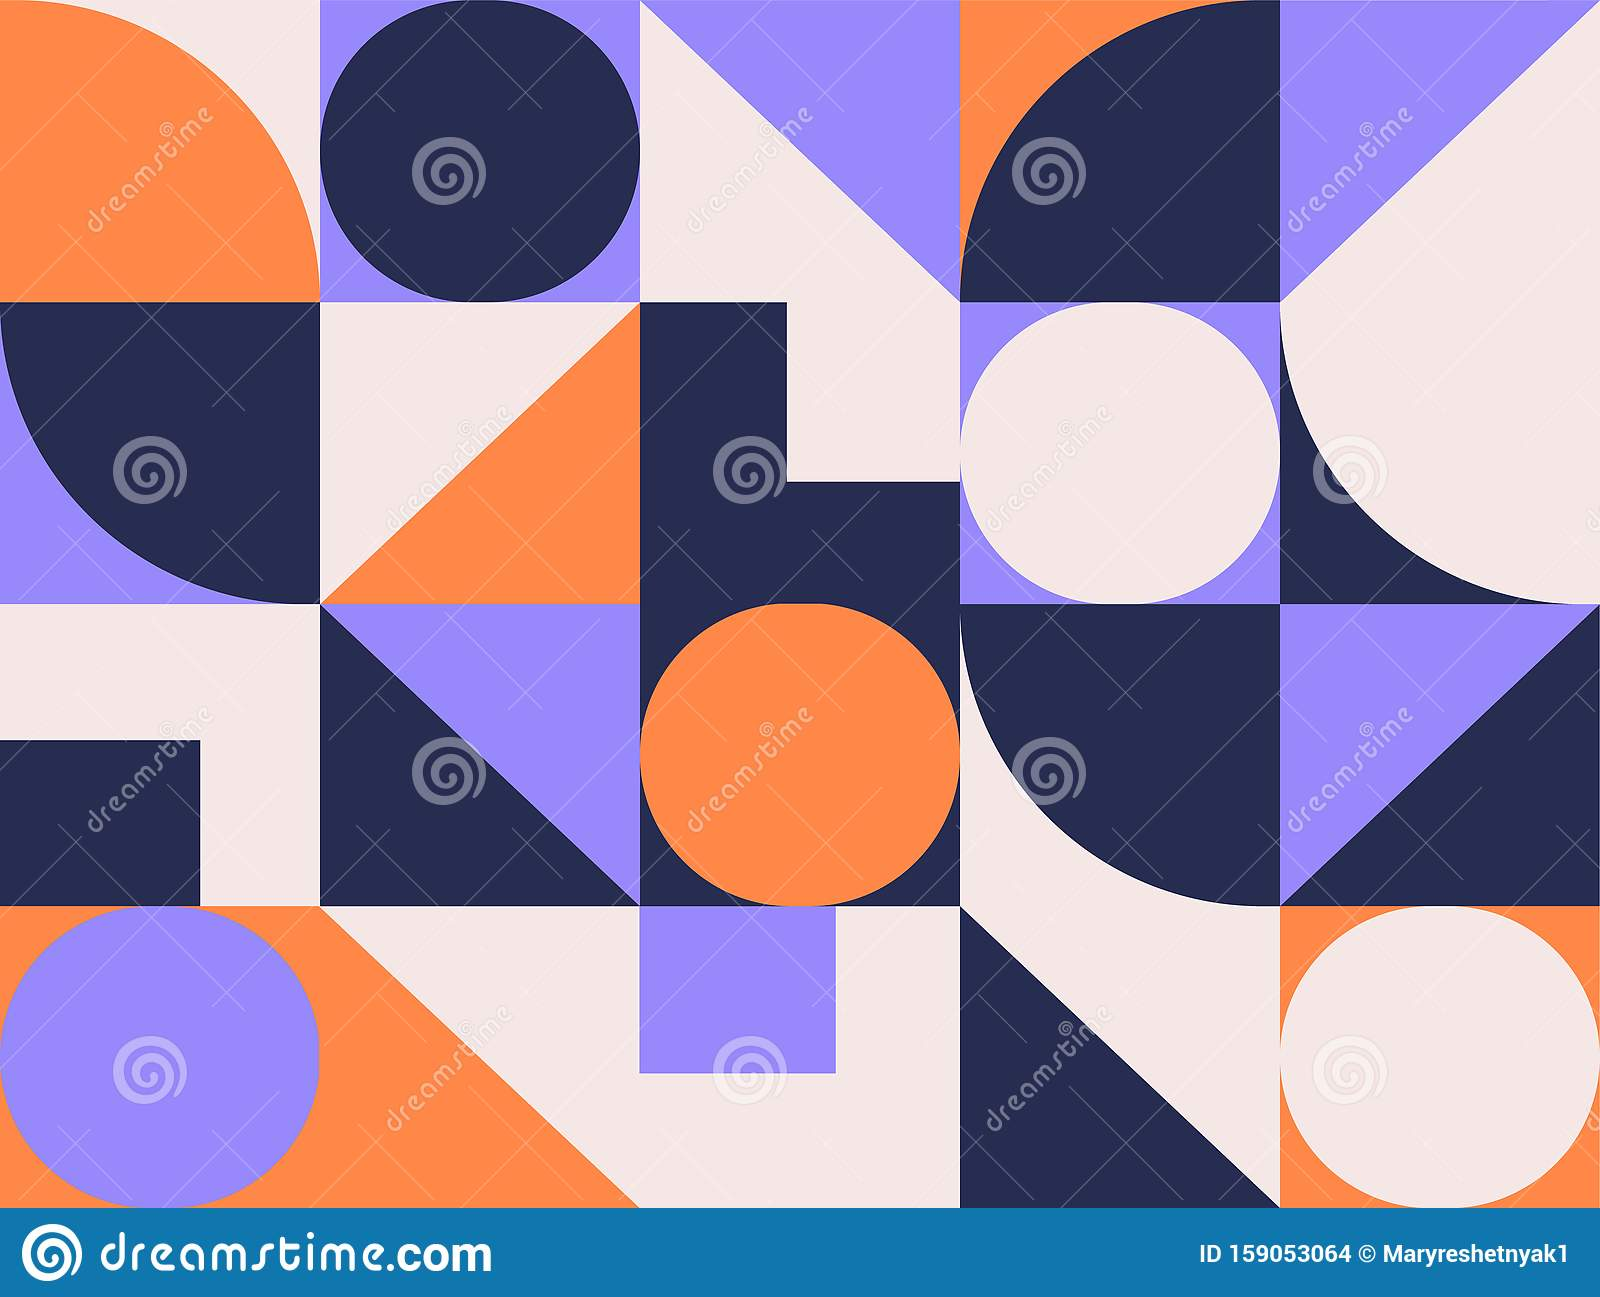 Geometric pattern background with square, geometry round, triangle. Abstract creative color geometric shape. 3d geometry pattern.